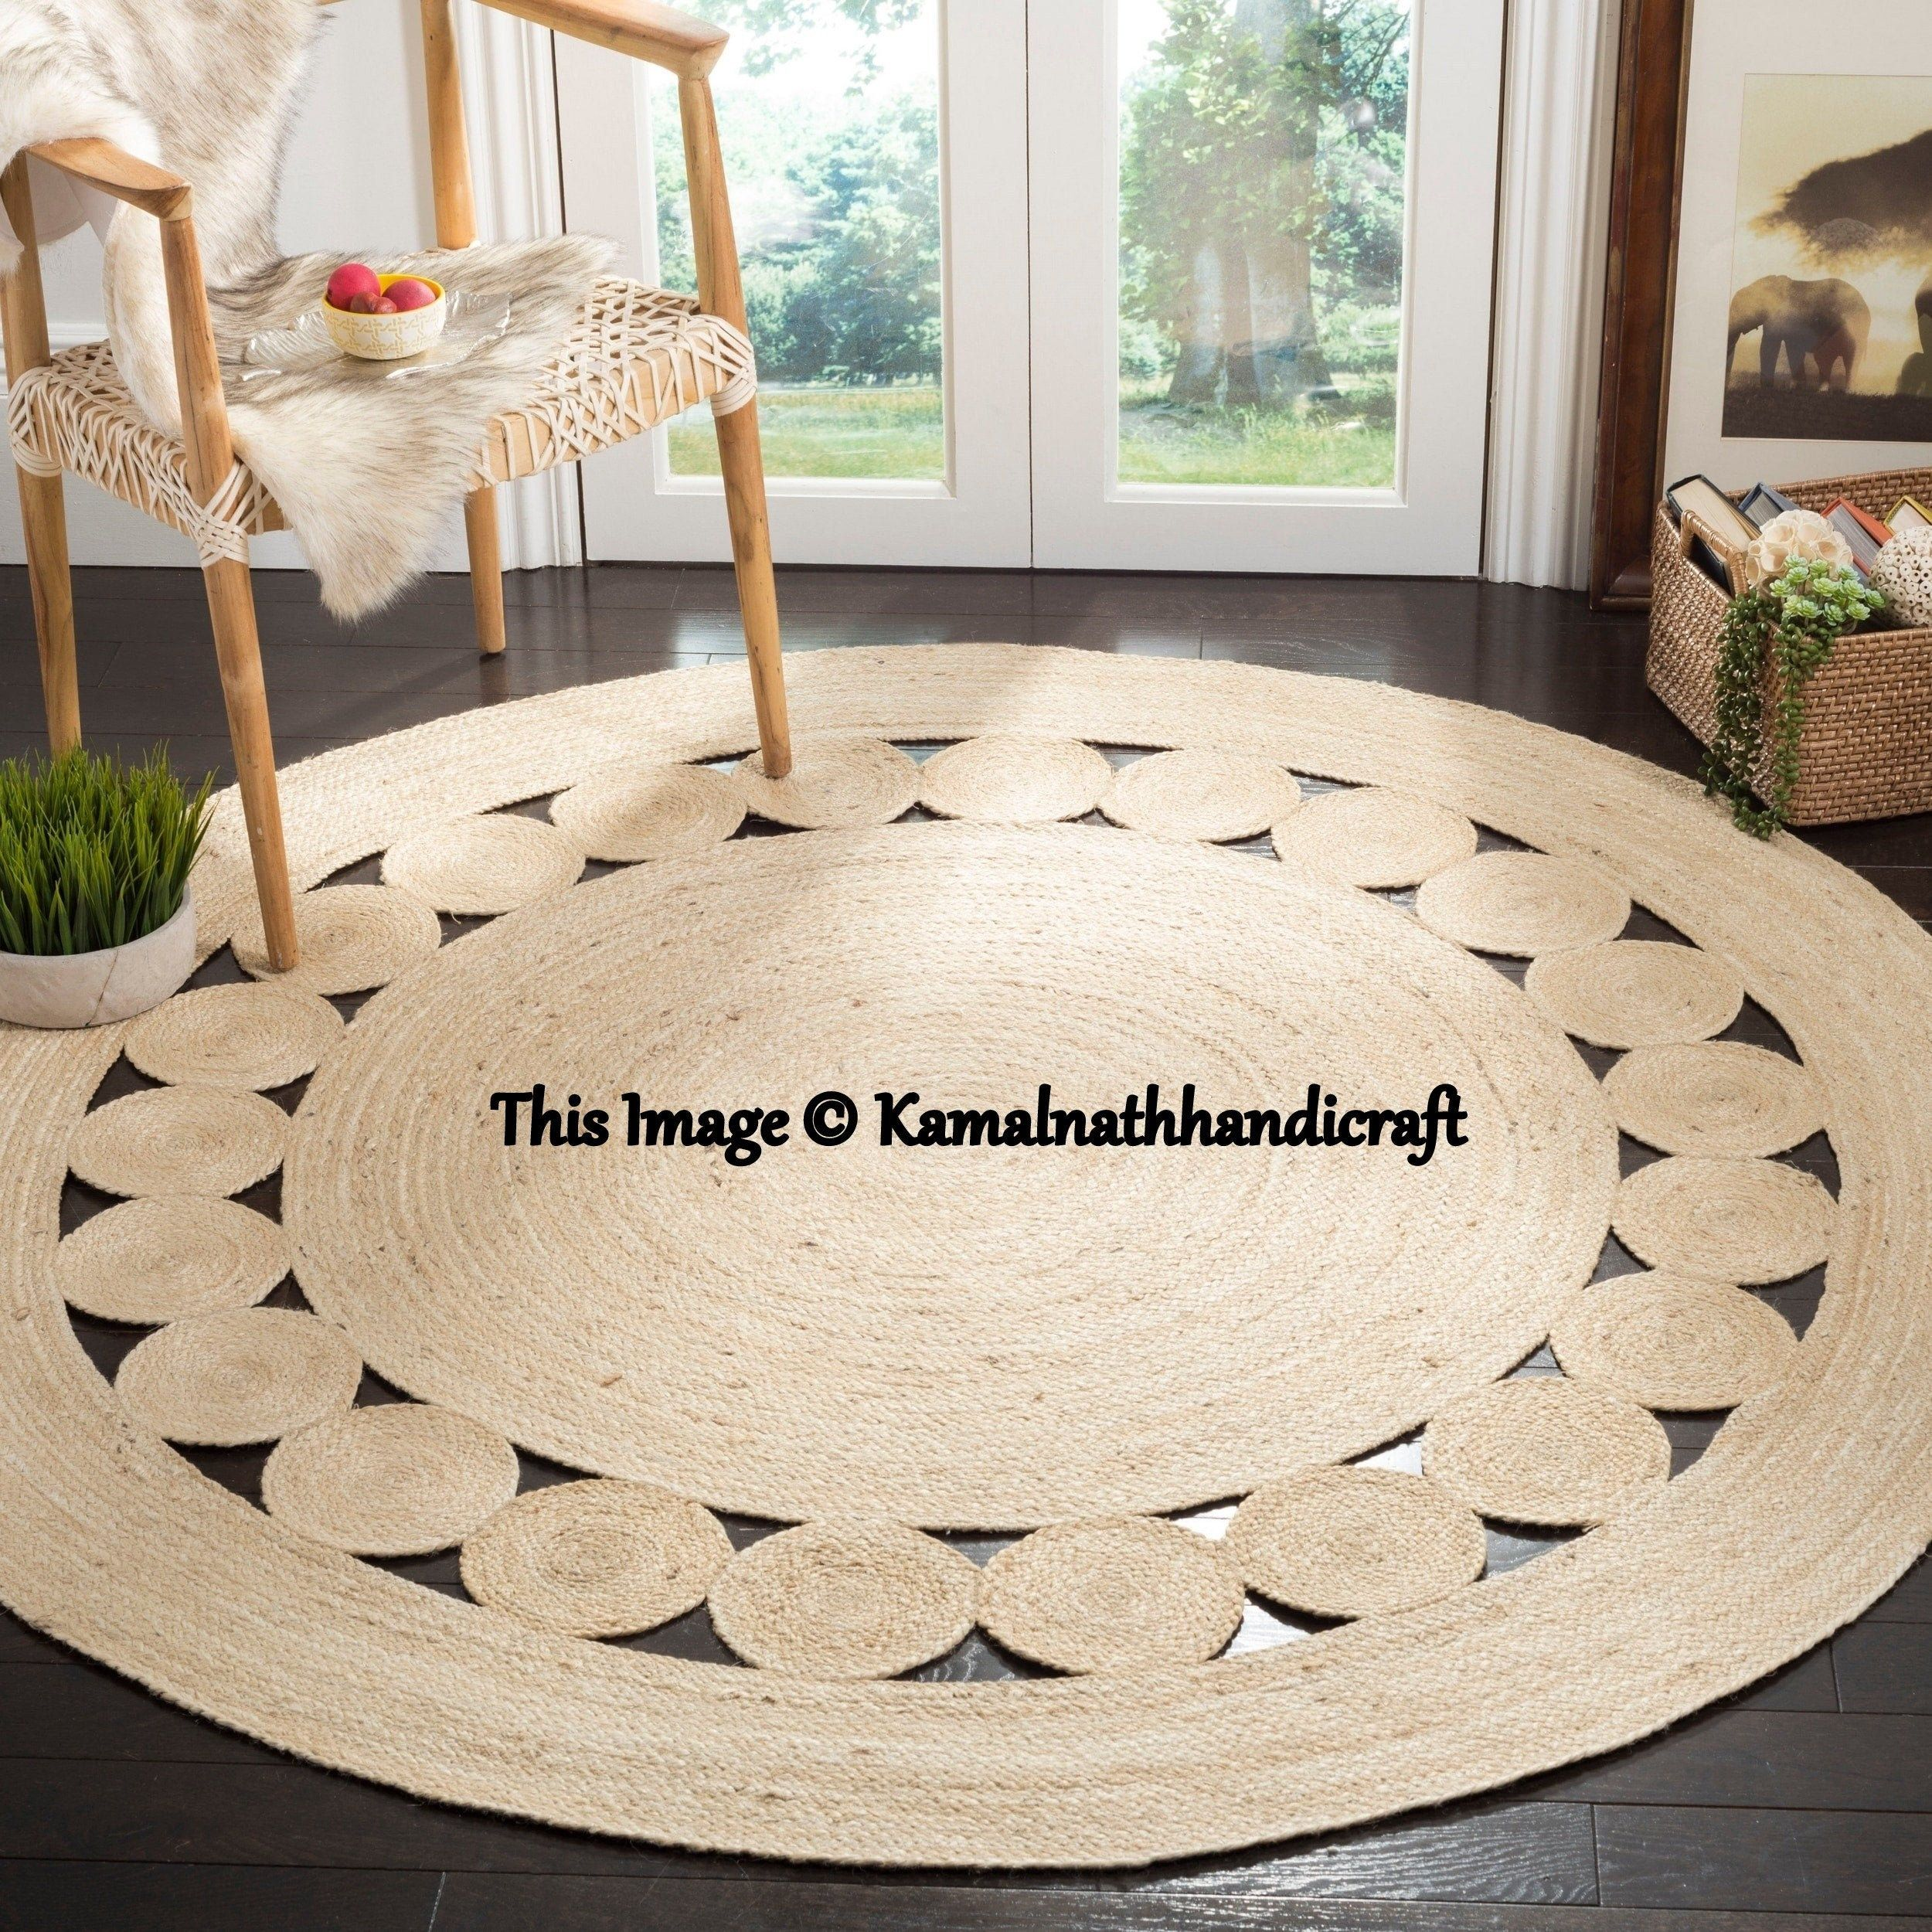 Indian Braided Floor Jute Rug, Natural Jute Rug. N